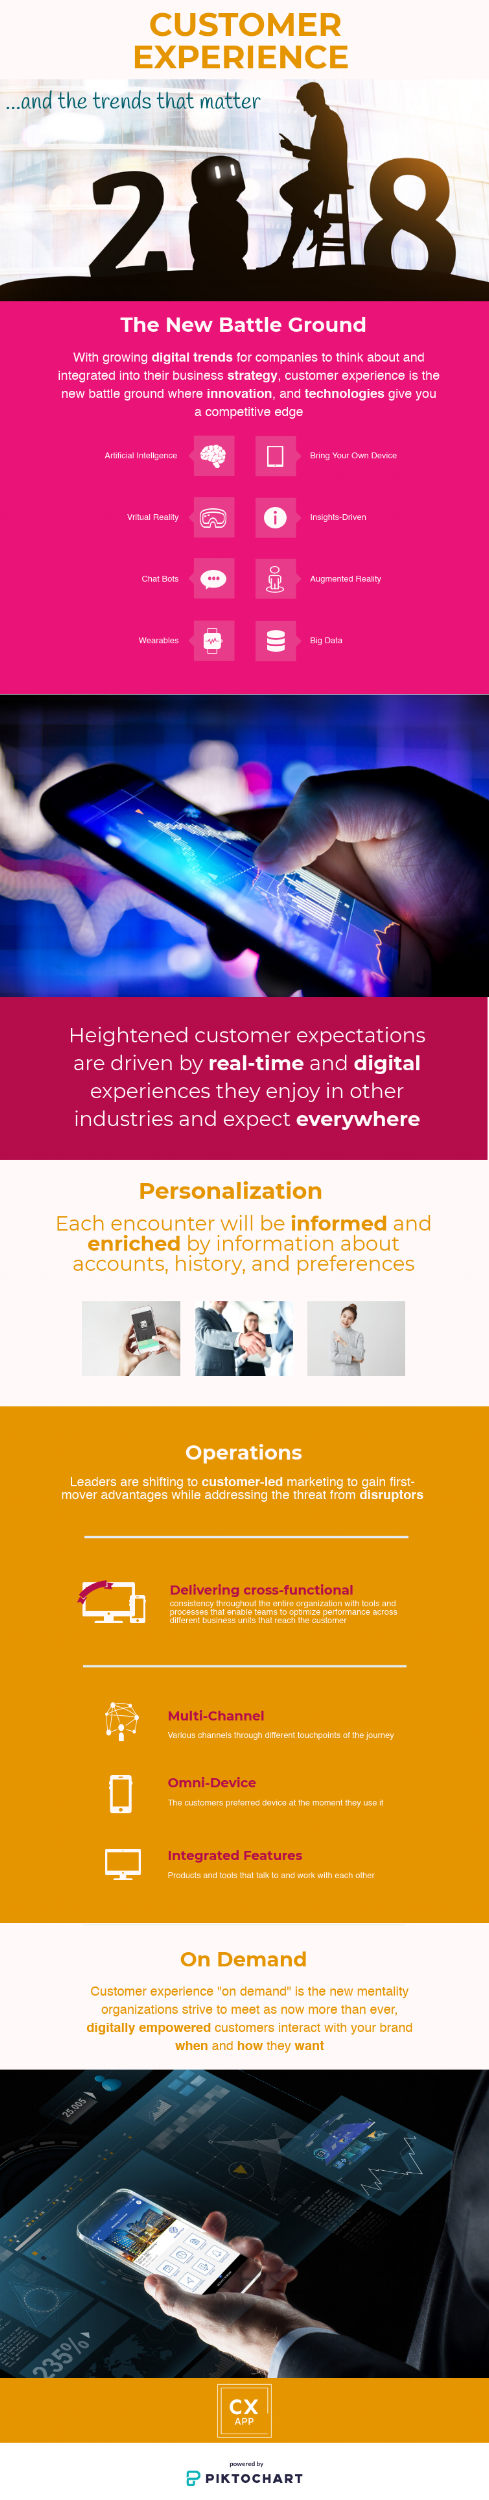 The Trends Shaping Customer Experience